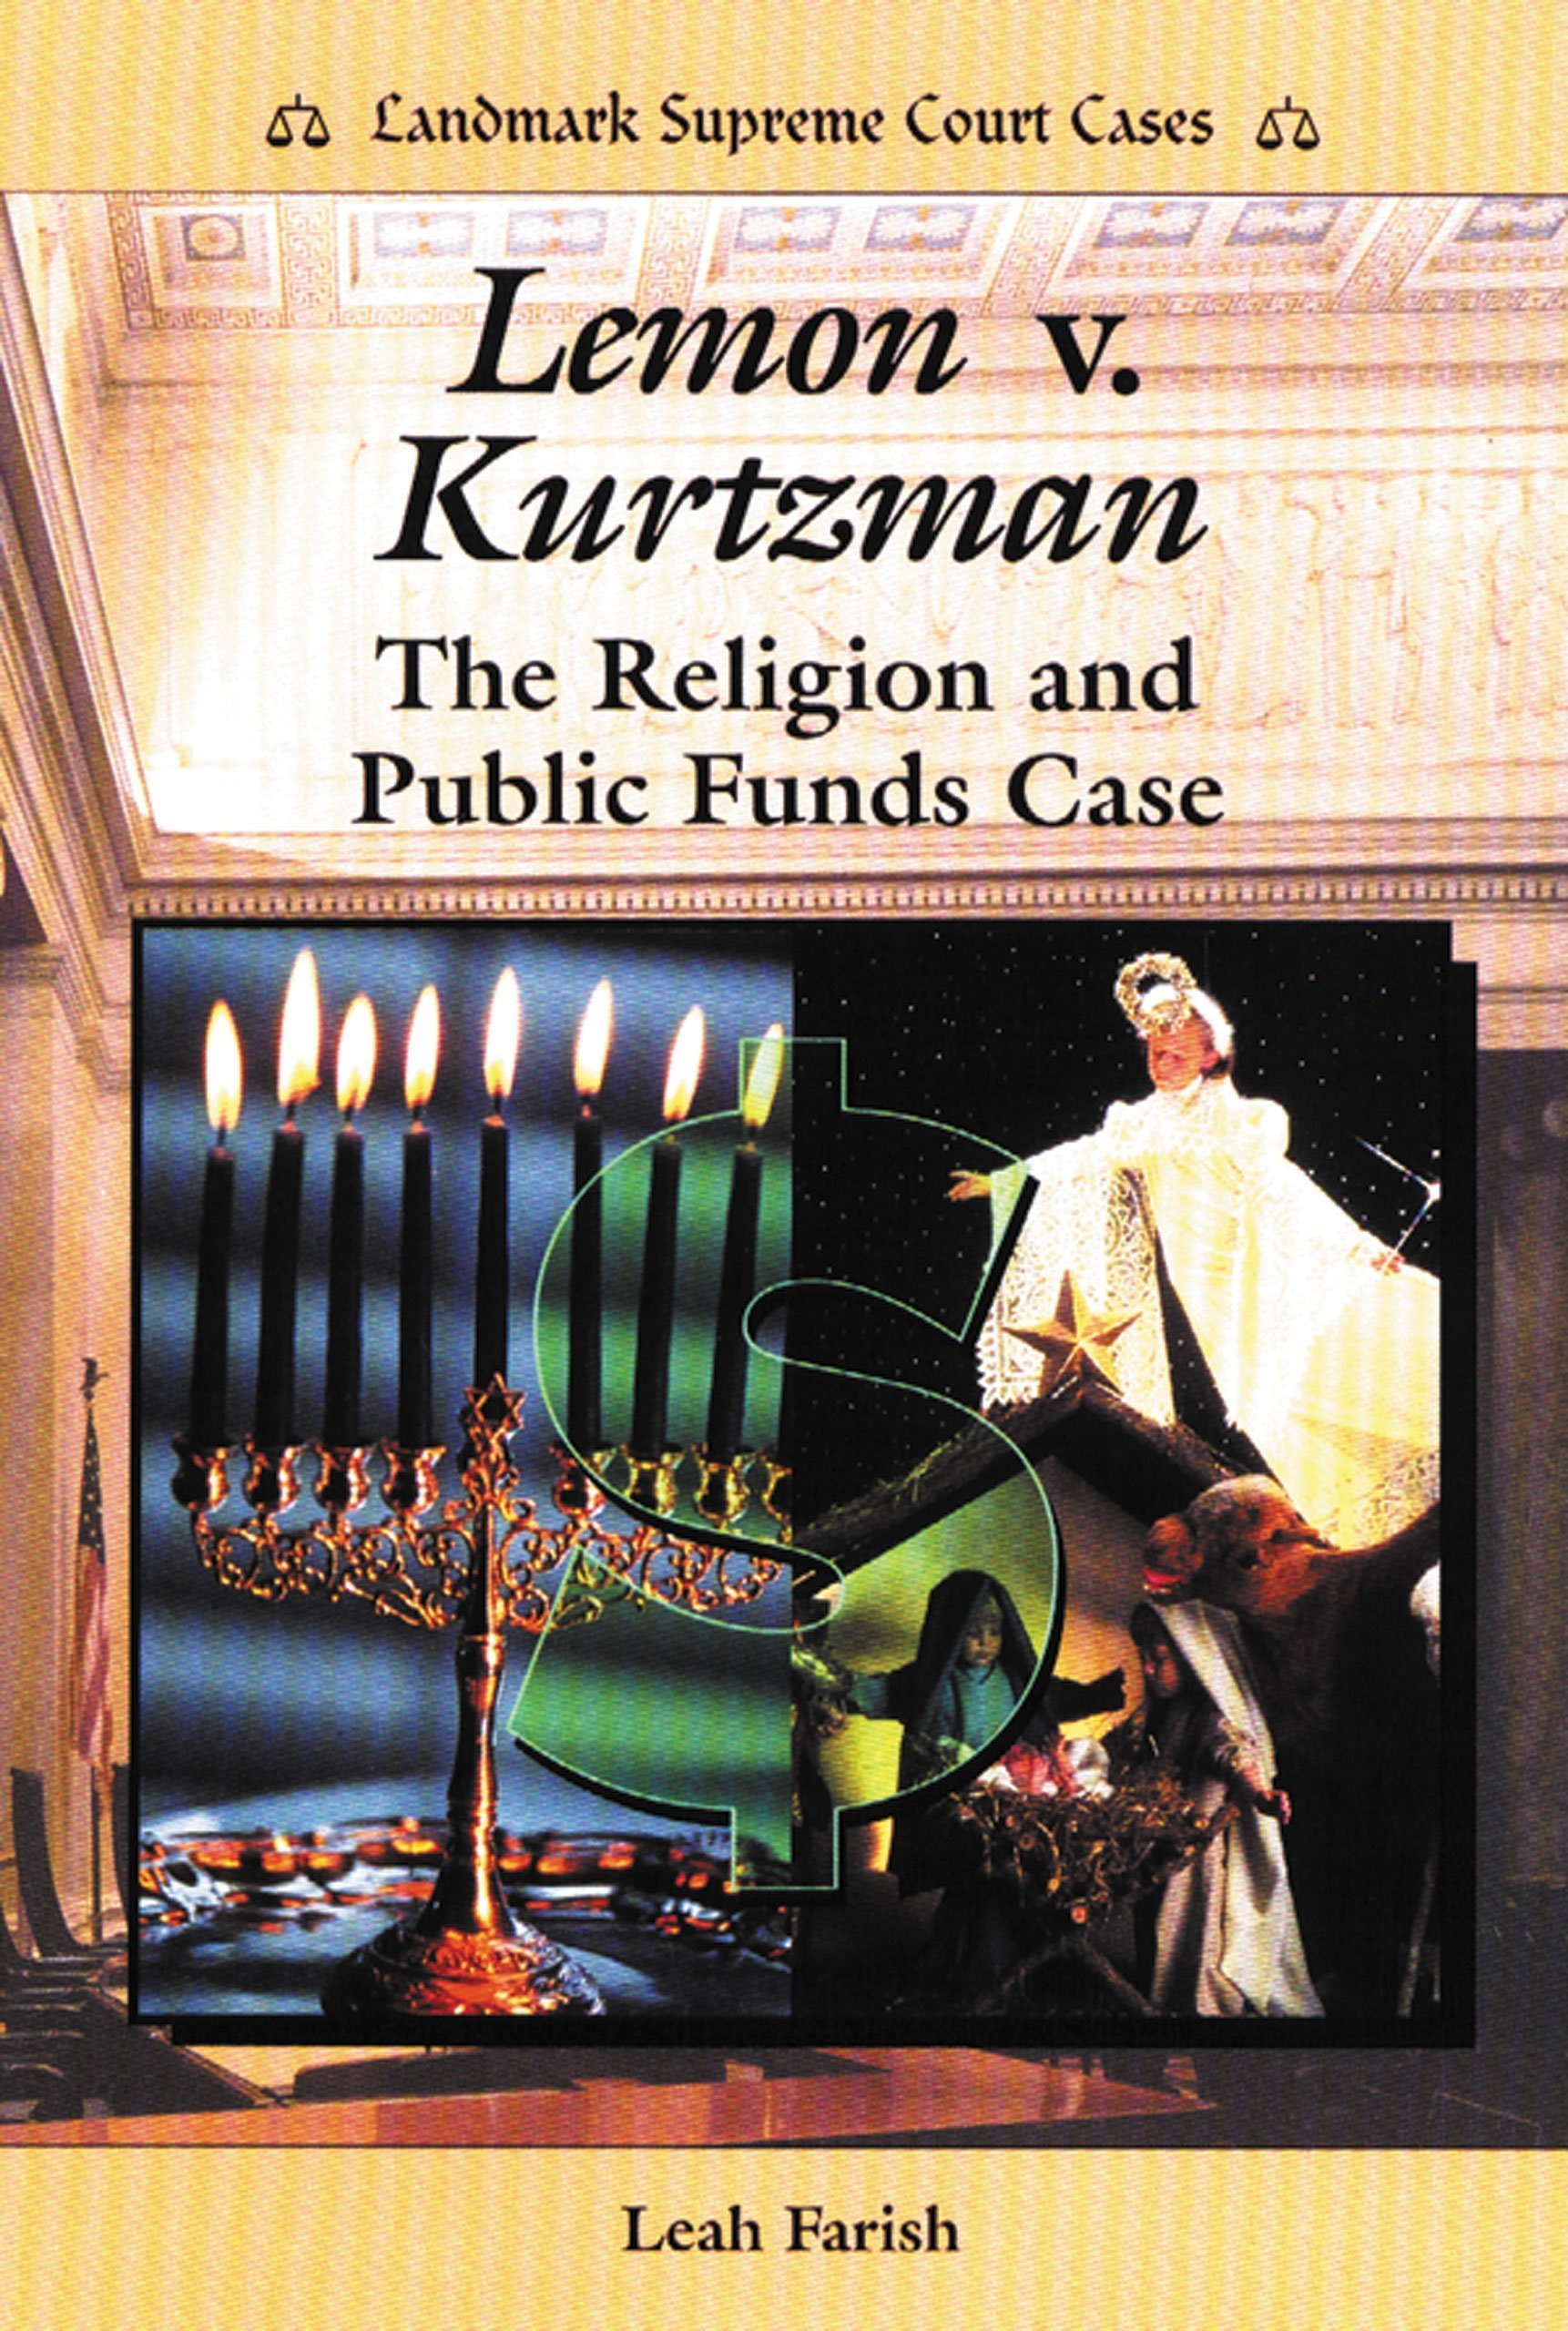 Read Online Lemon V. Kurtzman: The Religion and Public Funds Case (Landmark Supreme Court Cases) pdf